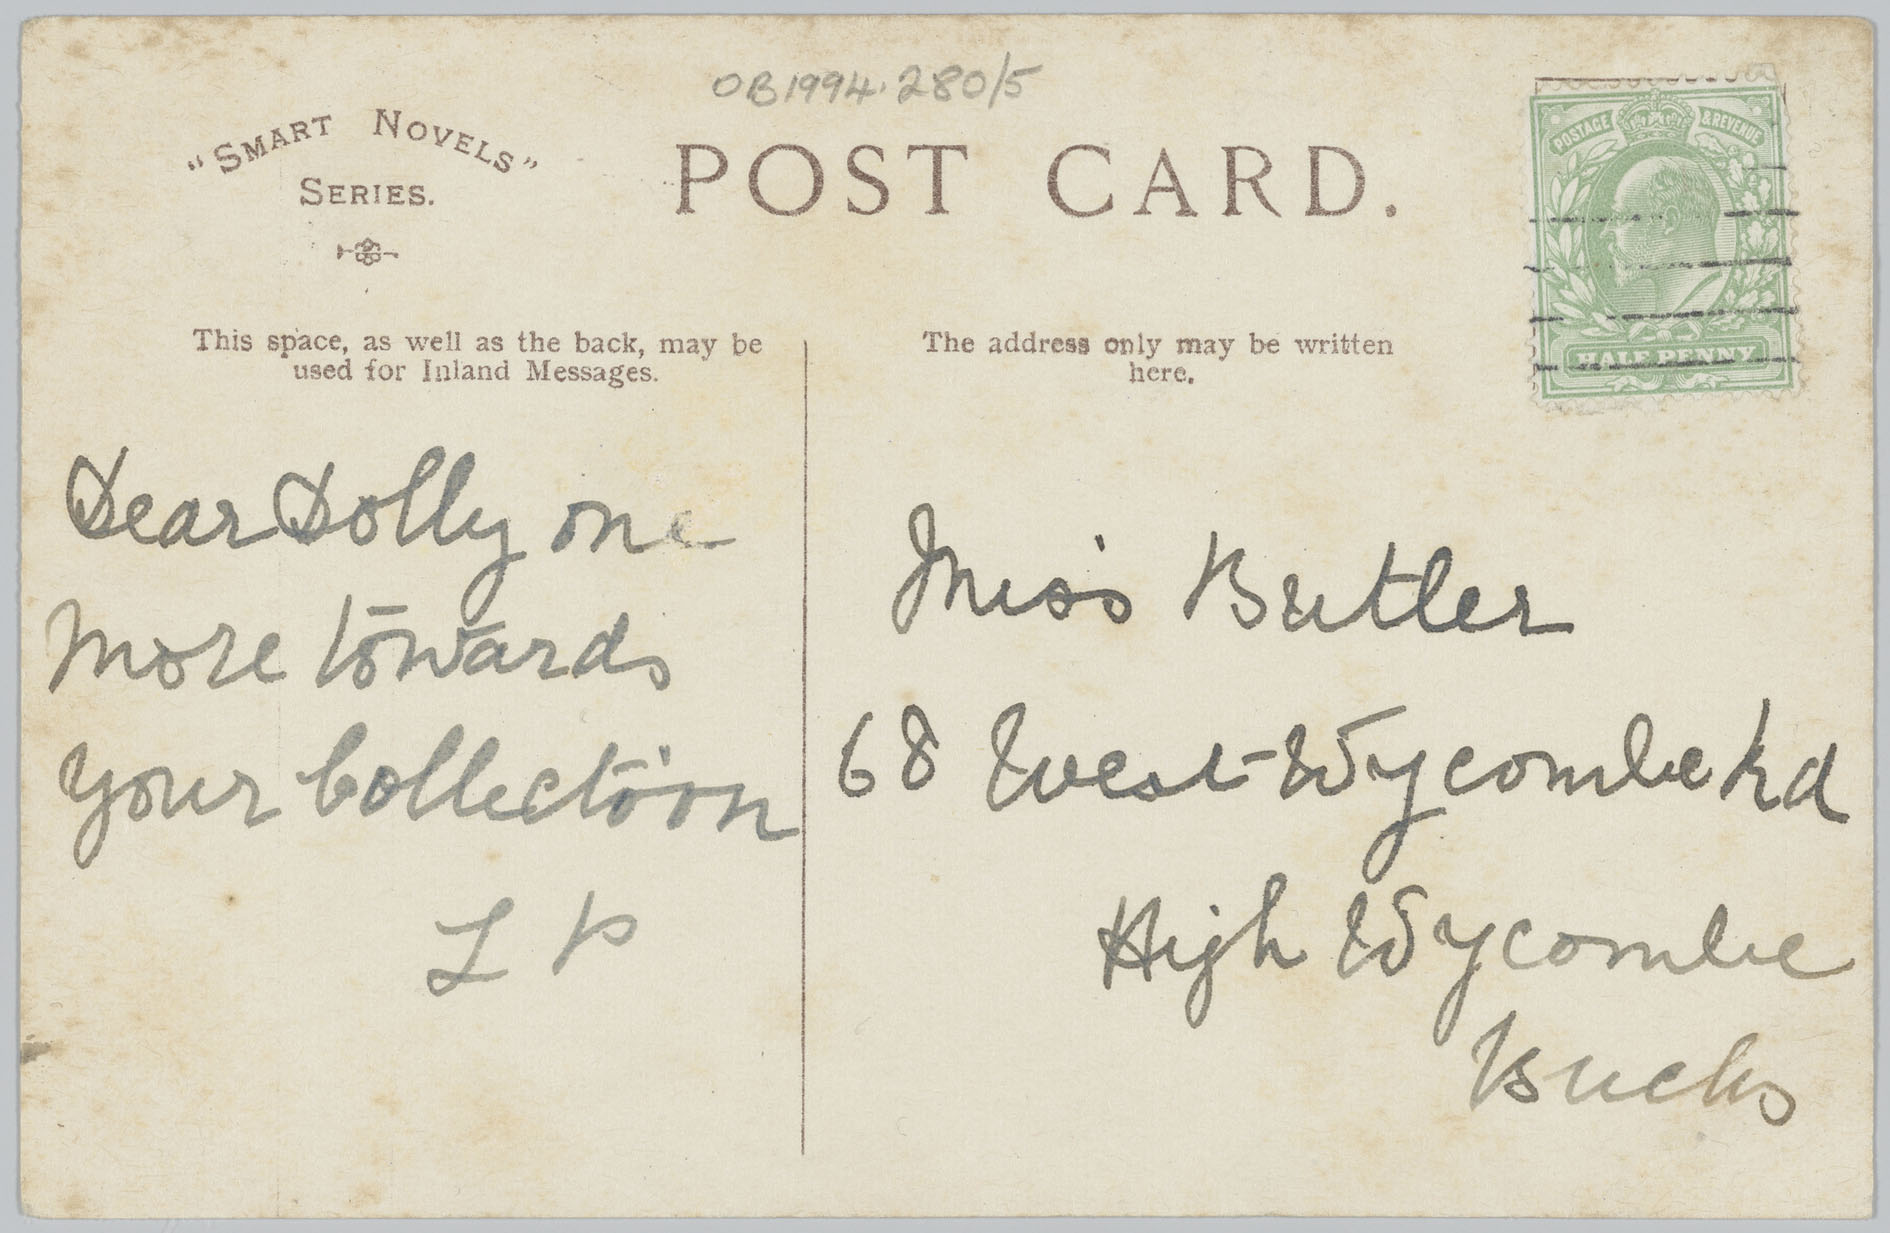 Image of the reverse of a postcard with the message and address separated by a vertical line.